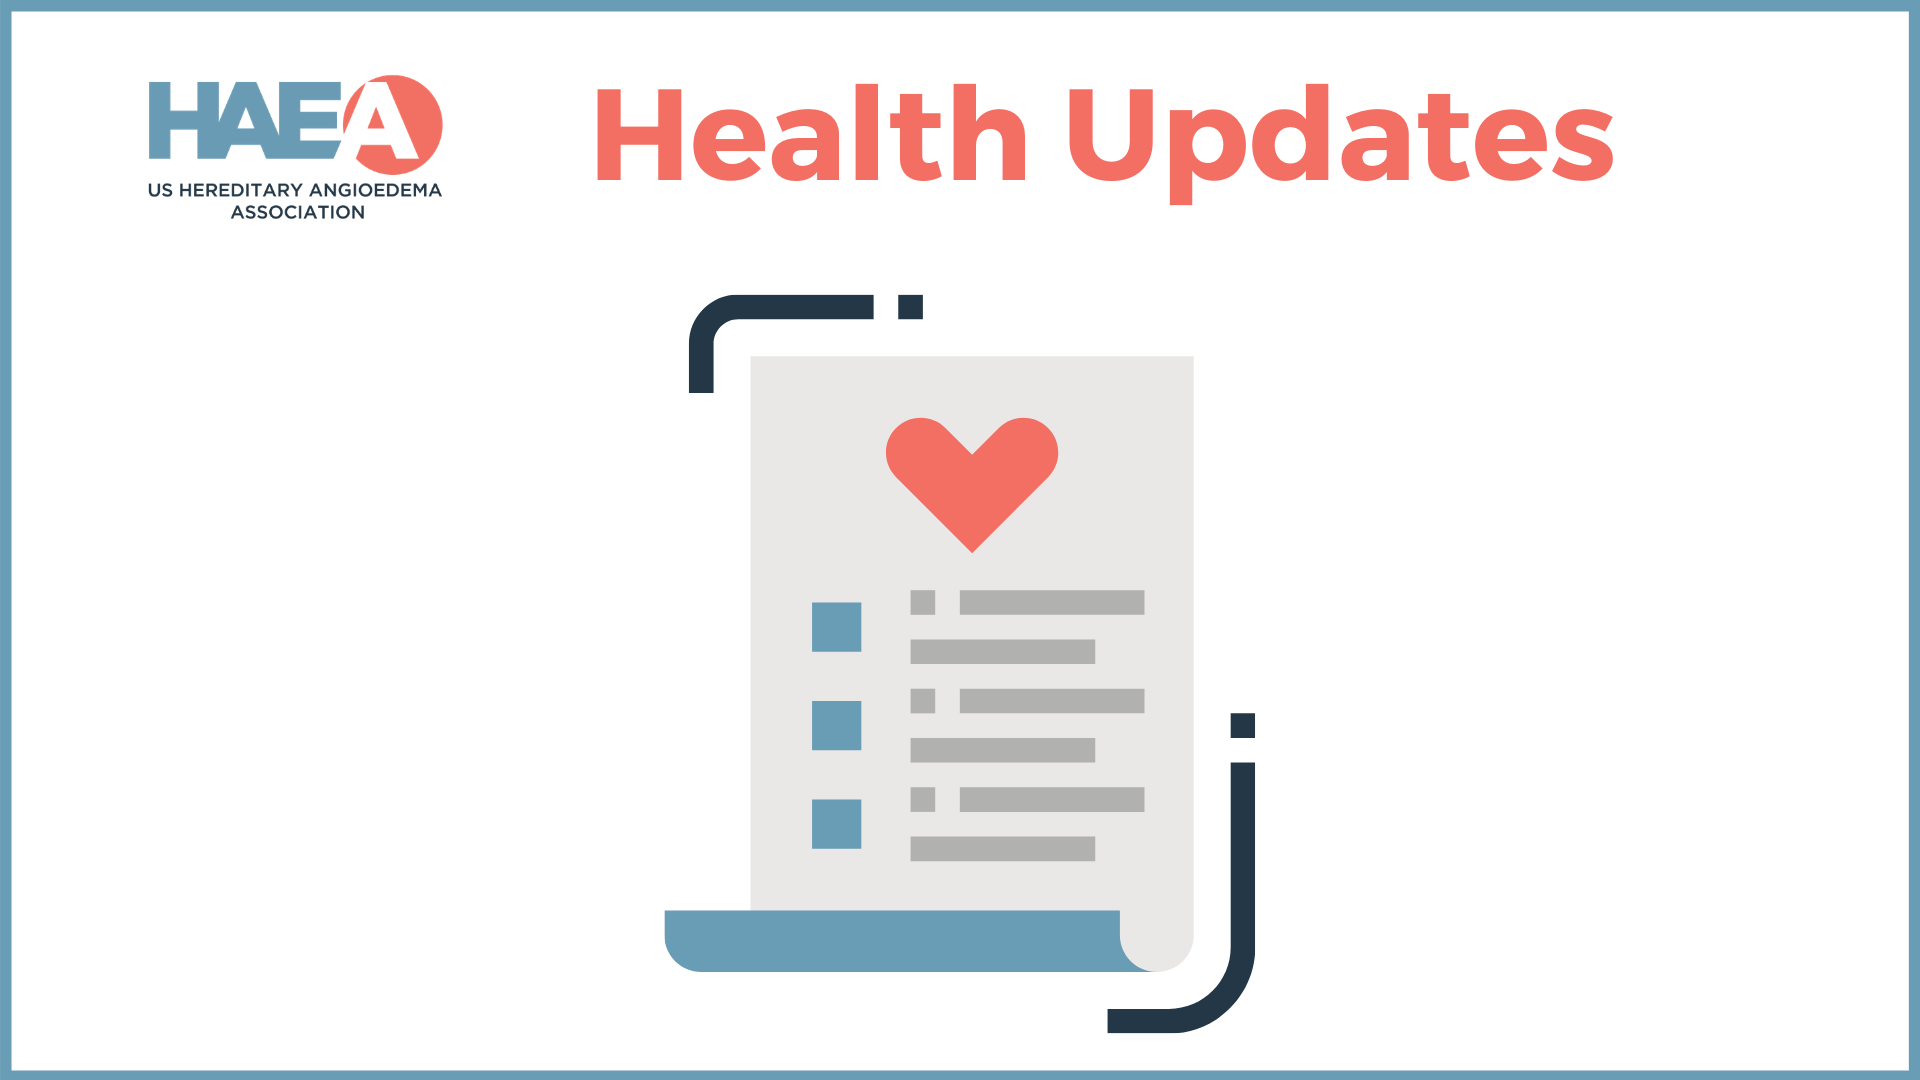 HAEA Health Update